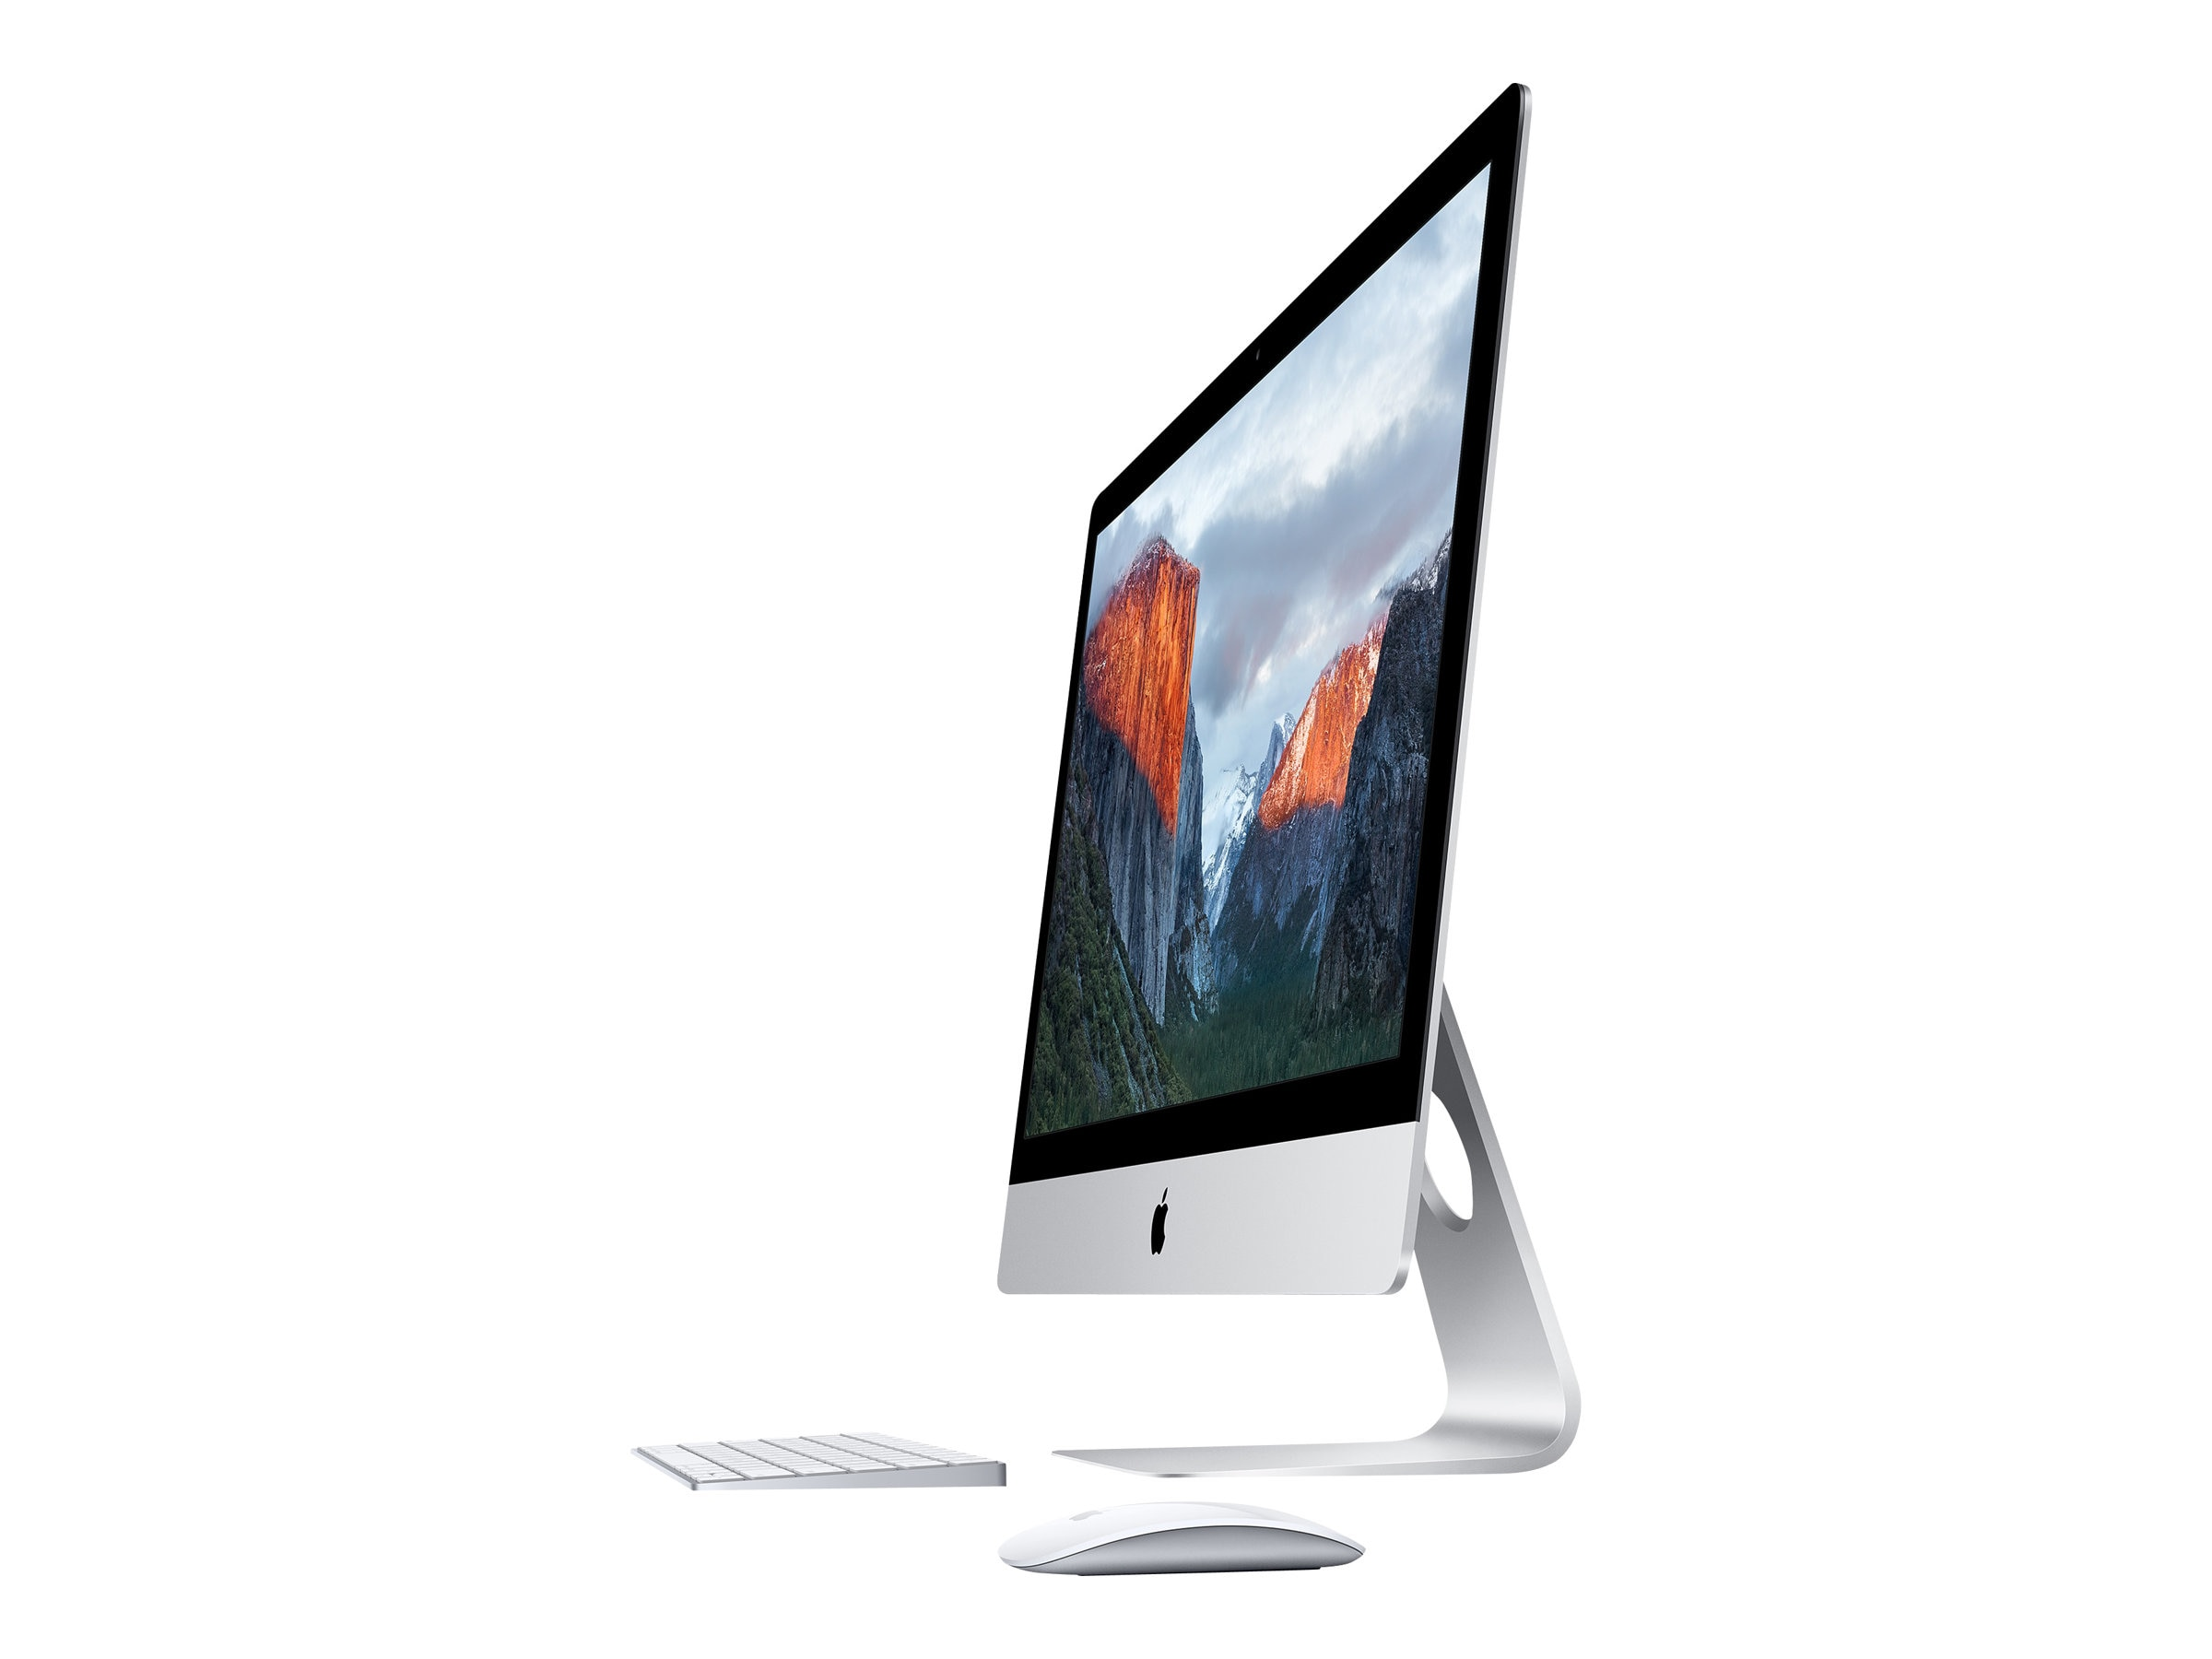 Apple iMac 21.5 4K QC 3.1GHz Core i5 8GB 1TB(5400) Iris Pro 6200 MagicKeyboard MagicMouse2, MK452LL/A, 30761548, Desktops - iMacs